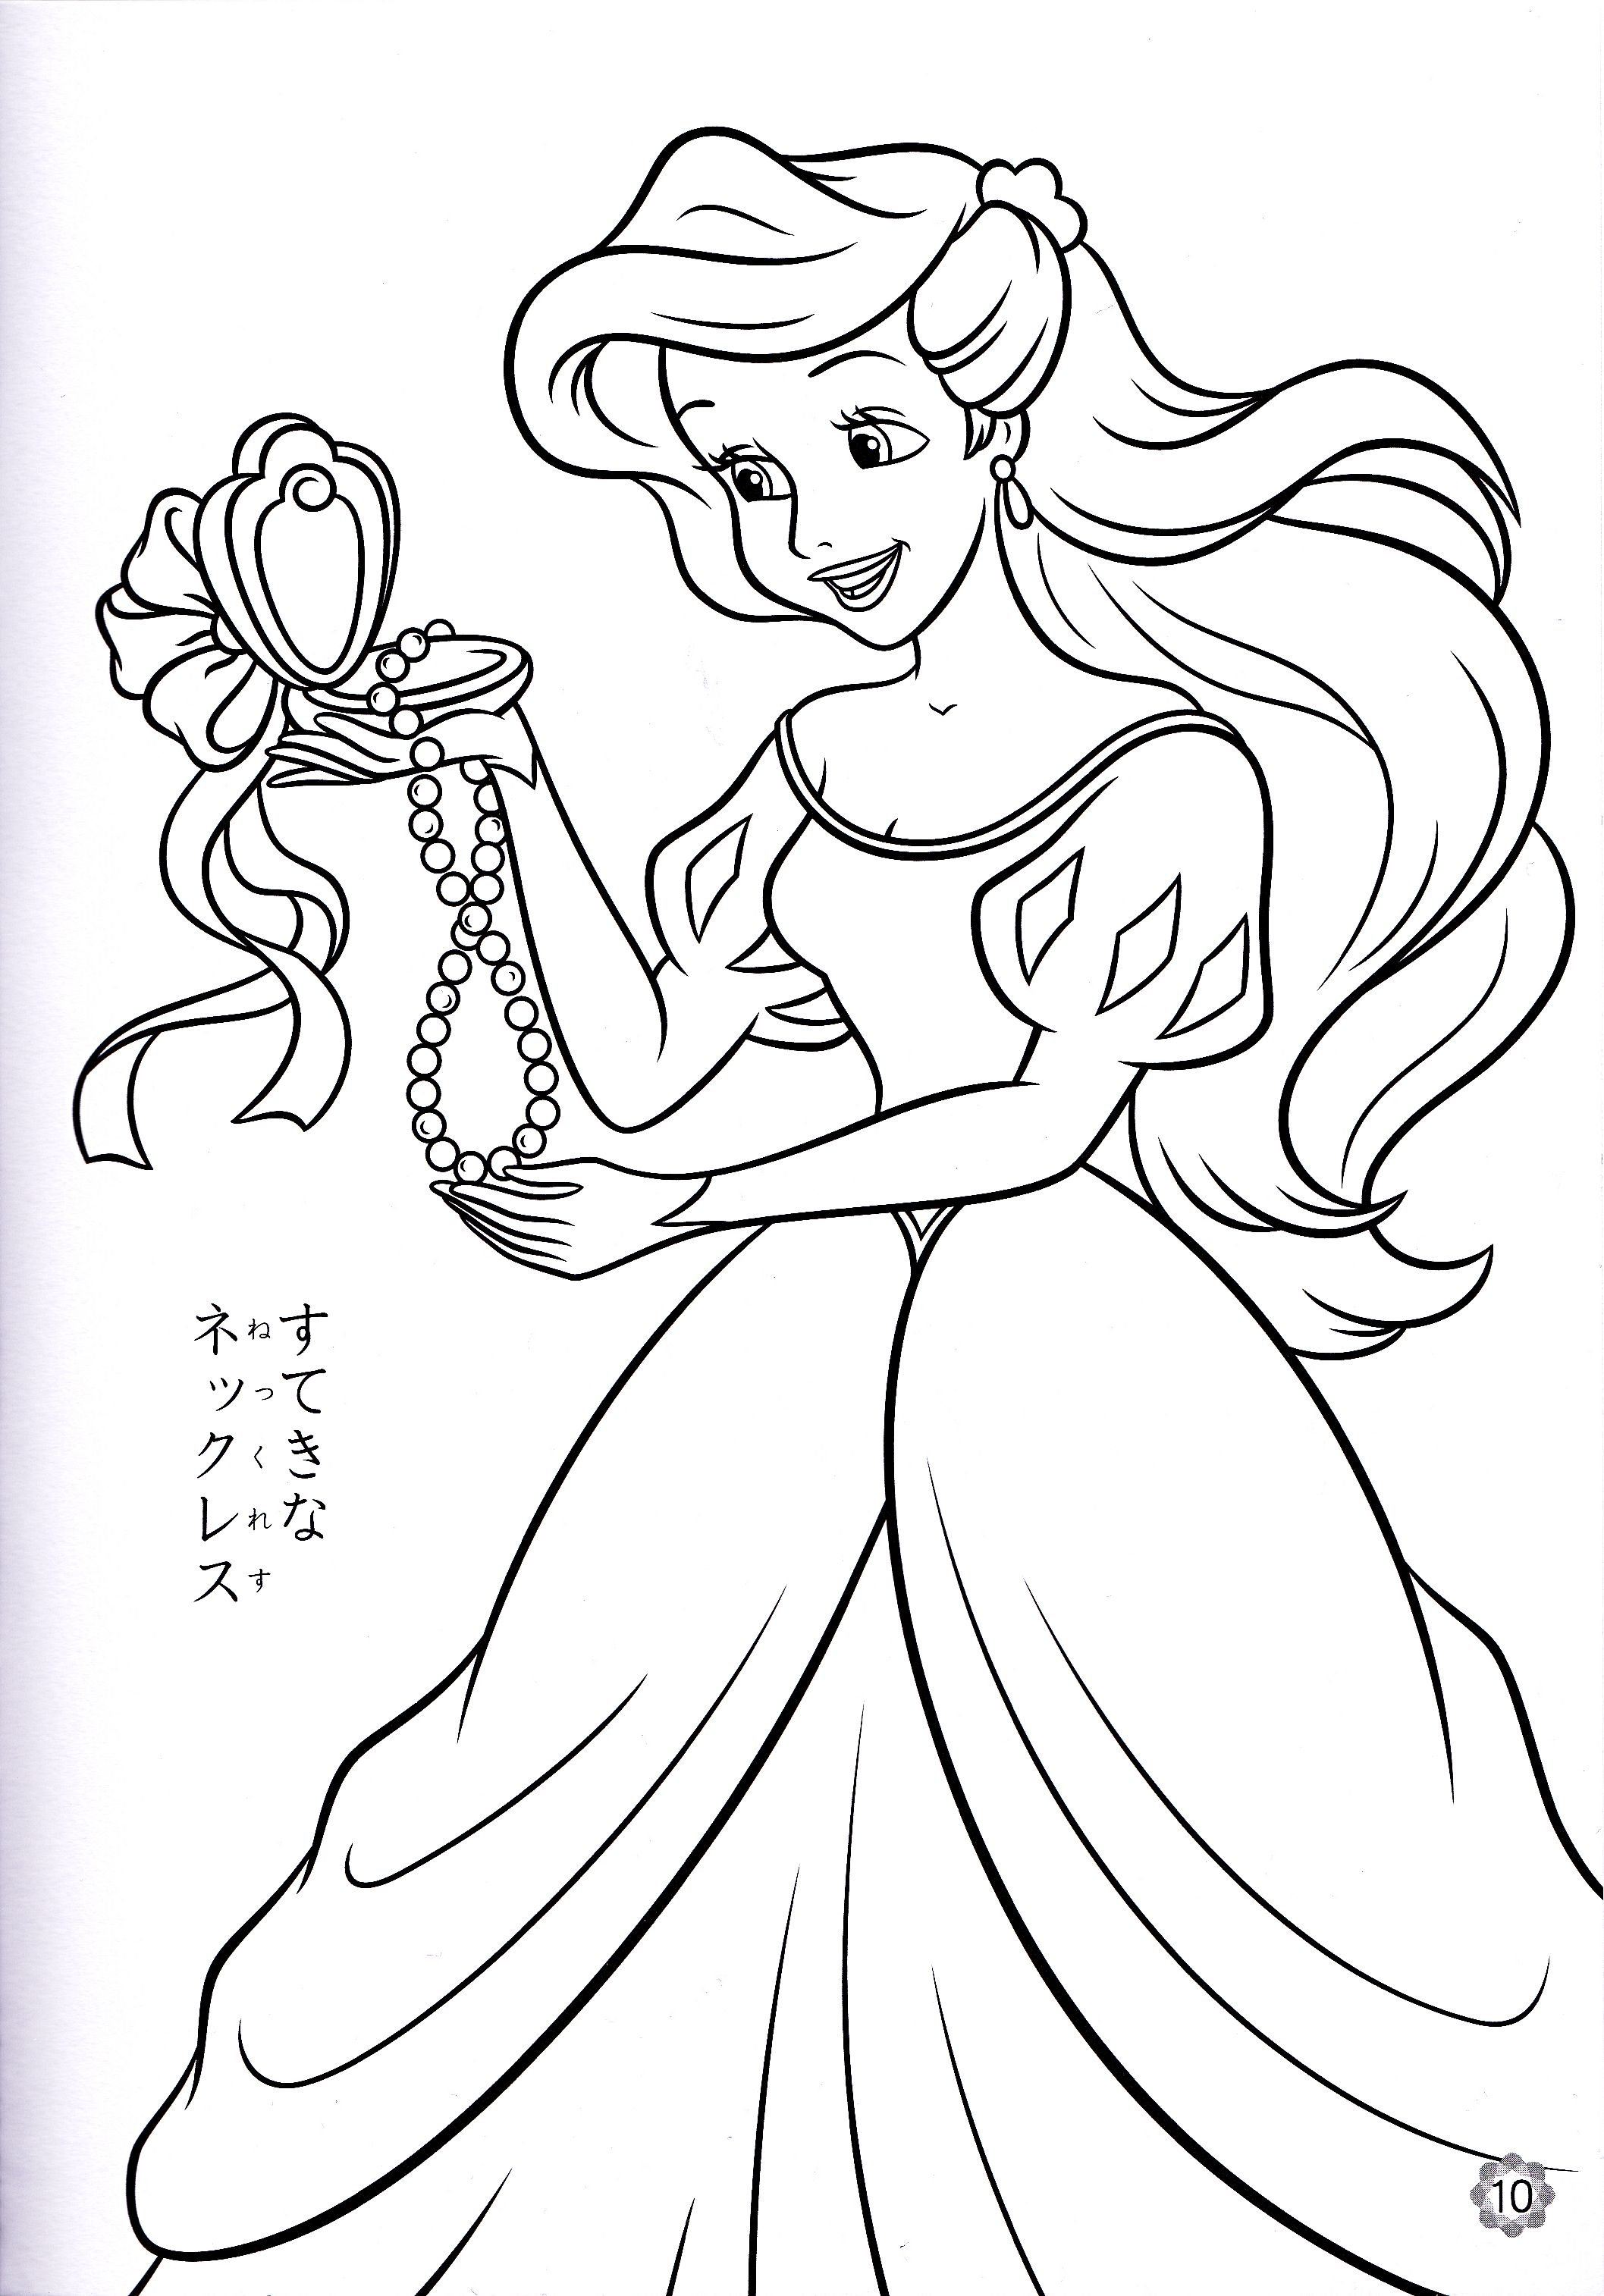 Free Printable Disney Coloring Books Disney Coloring Book Pages Free Printable Disney Princess ...